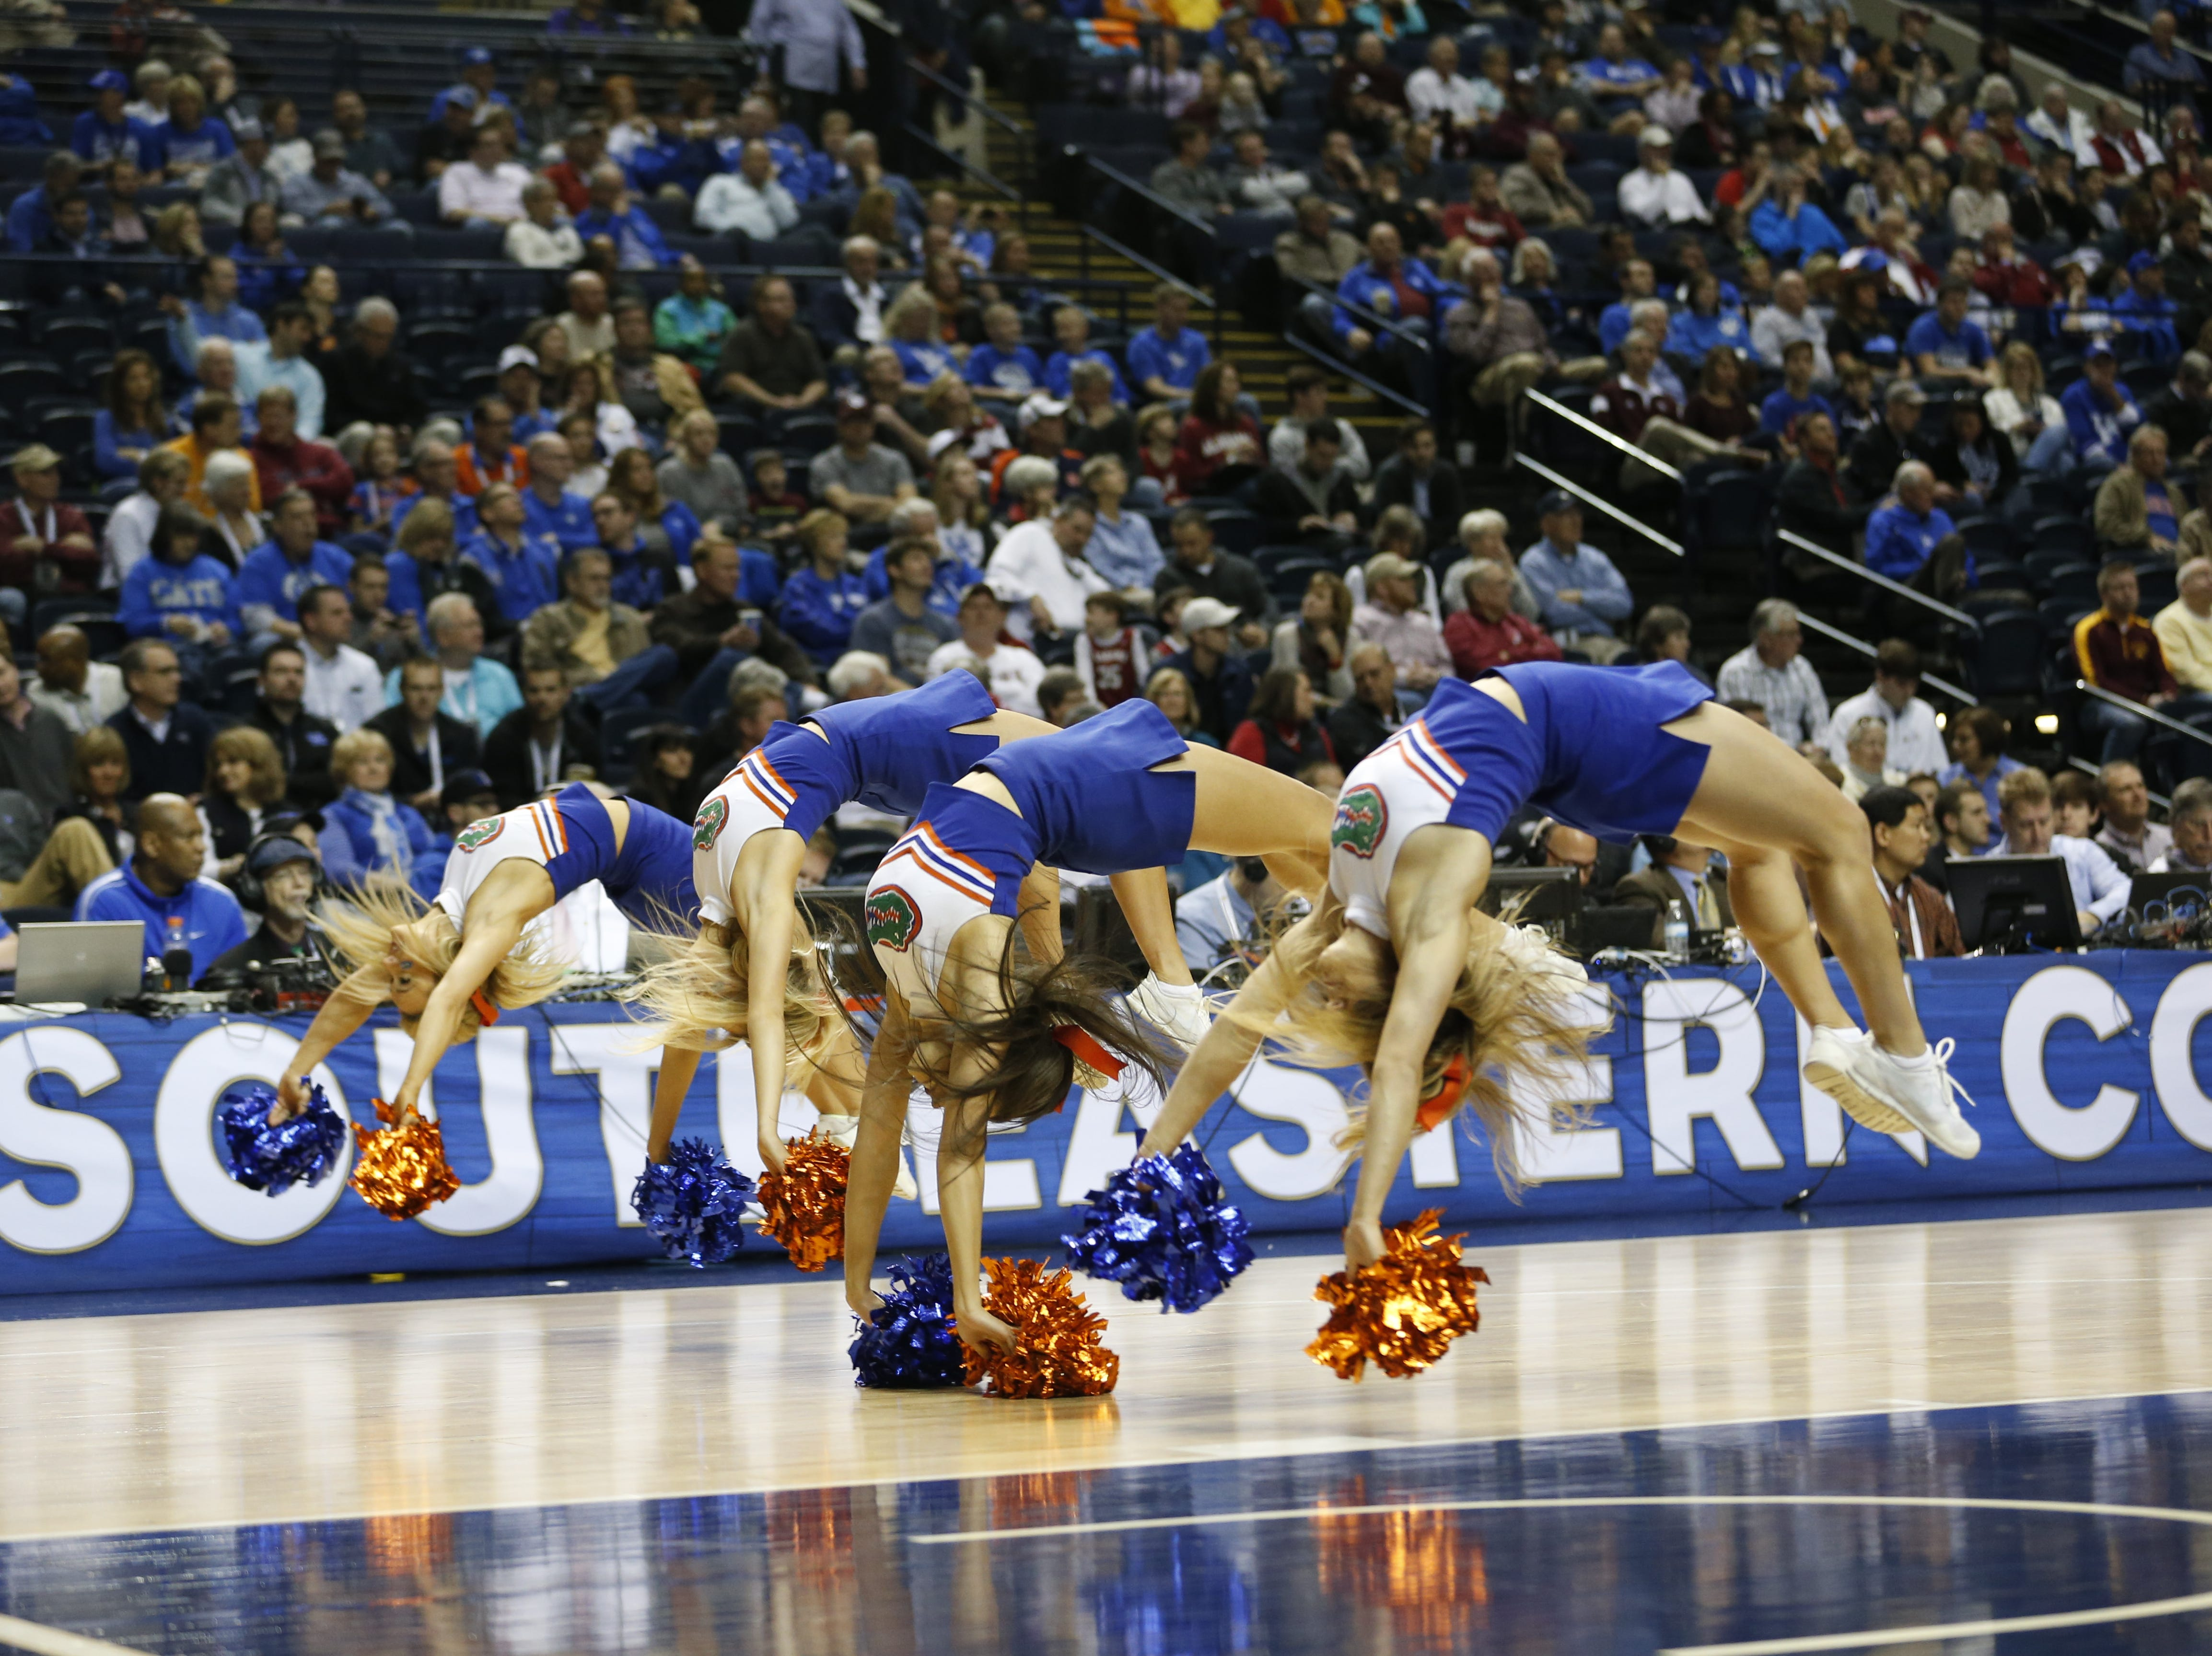 Florida cheerleaders perform during the first half of an NCAA college basketball game in the second round of the Southeastern Conference tournament between Alabama and Florida, Thursday, March 12, 2015, in Nashville, Tenn. (AP Photo/Steve Helber)